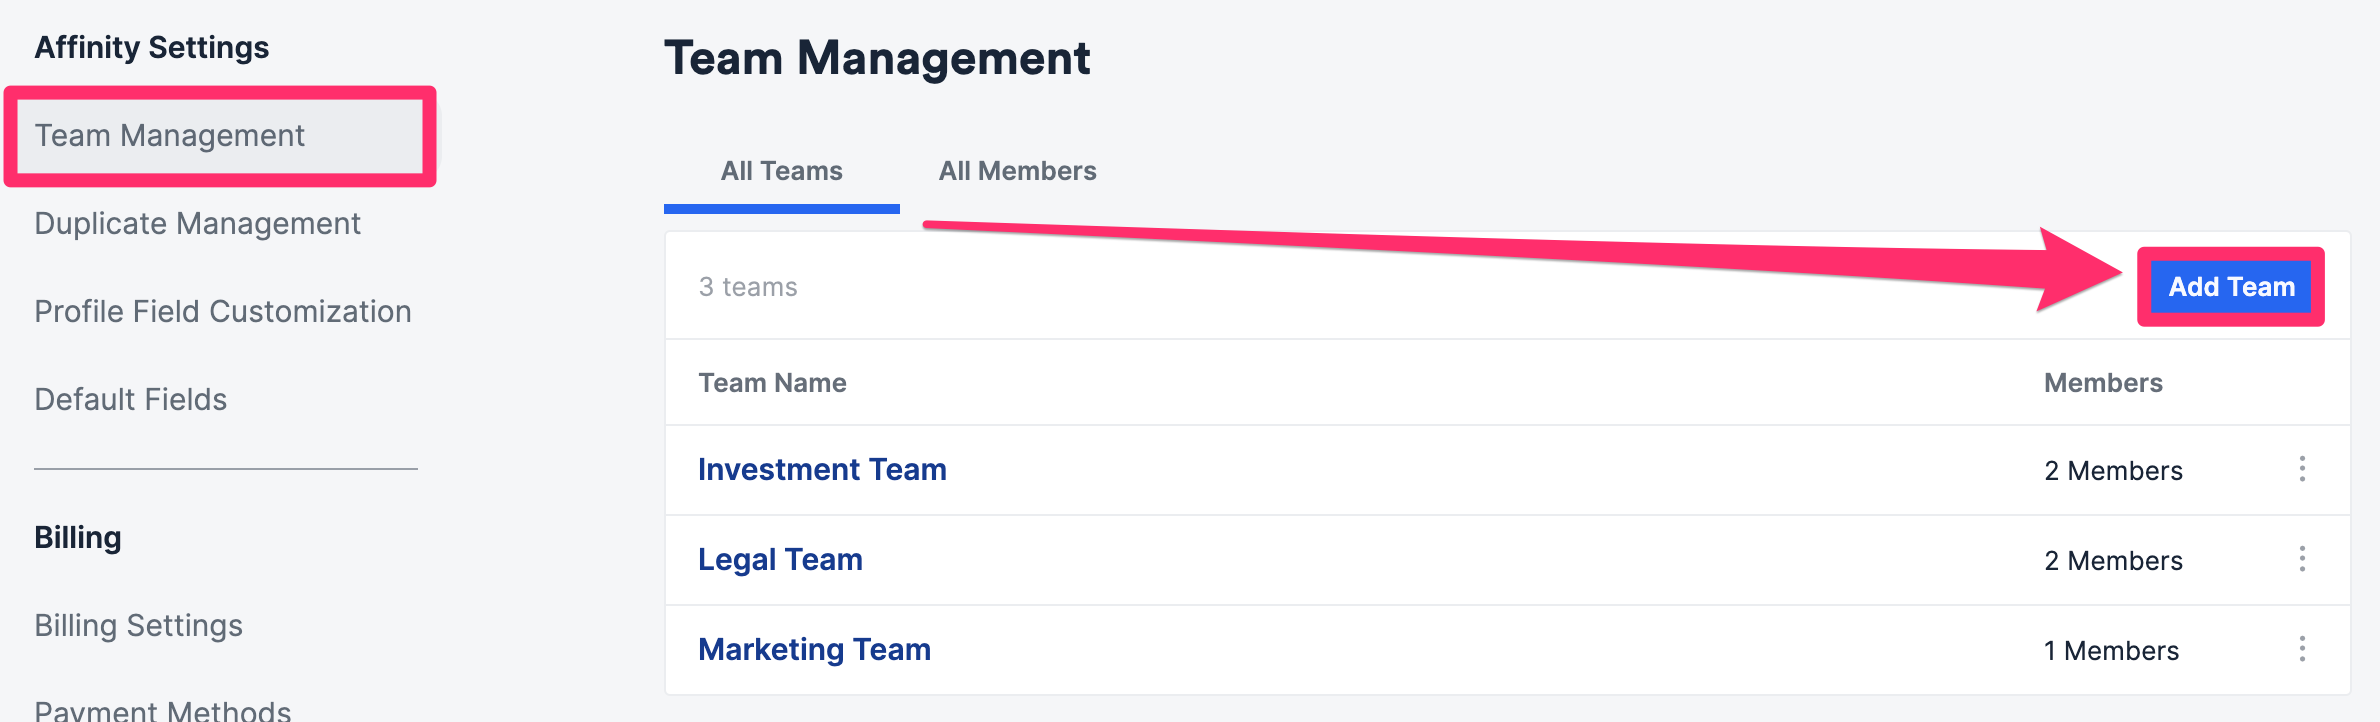 Team_Management_-_Create_Team.png